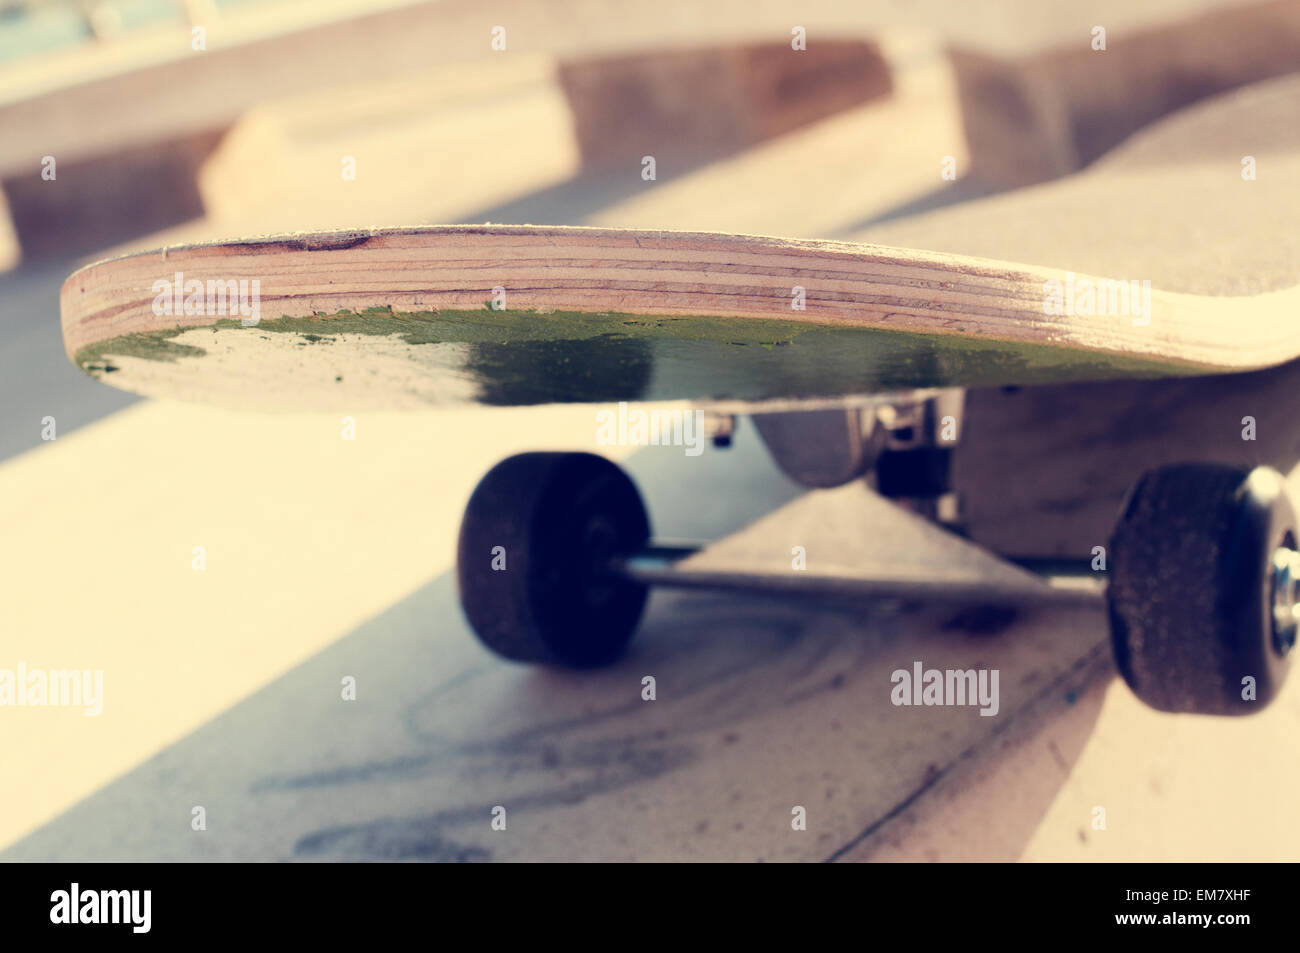 closeup of a skateboard in a skatepark - Stock Image